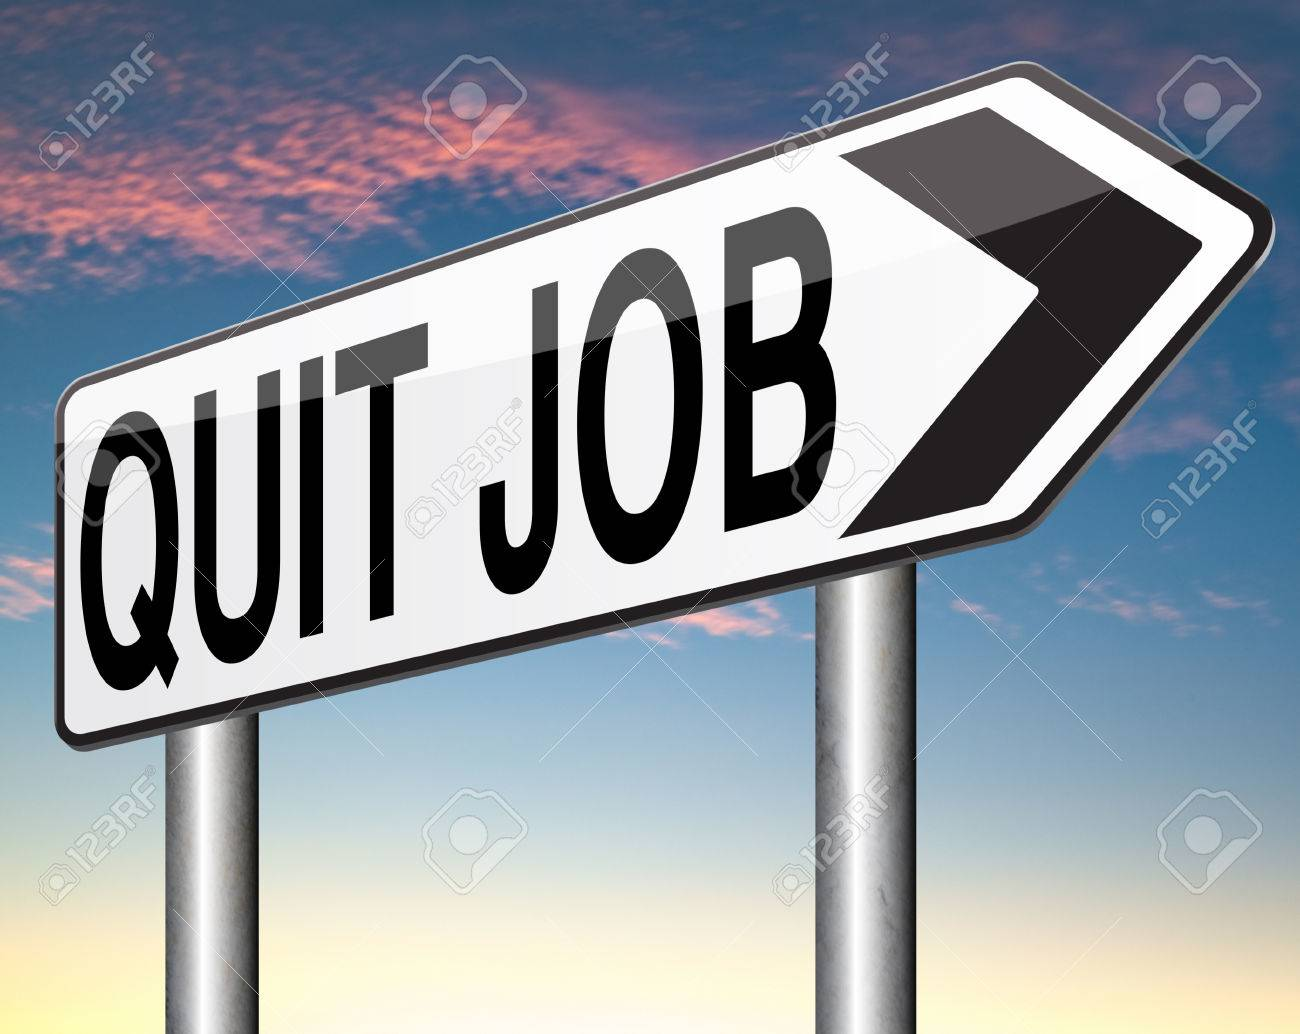 quit job career move resigning from work and getting unemployed stock photo quit job career move resigning from work and getting unemployed